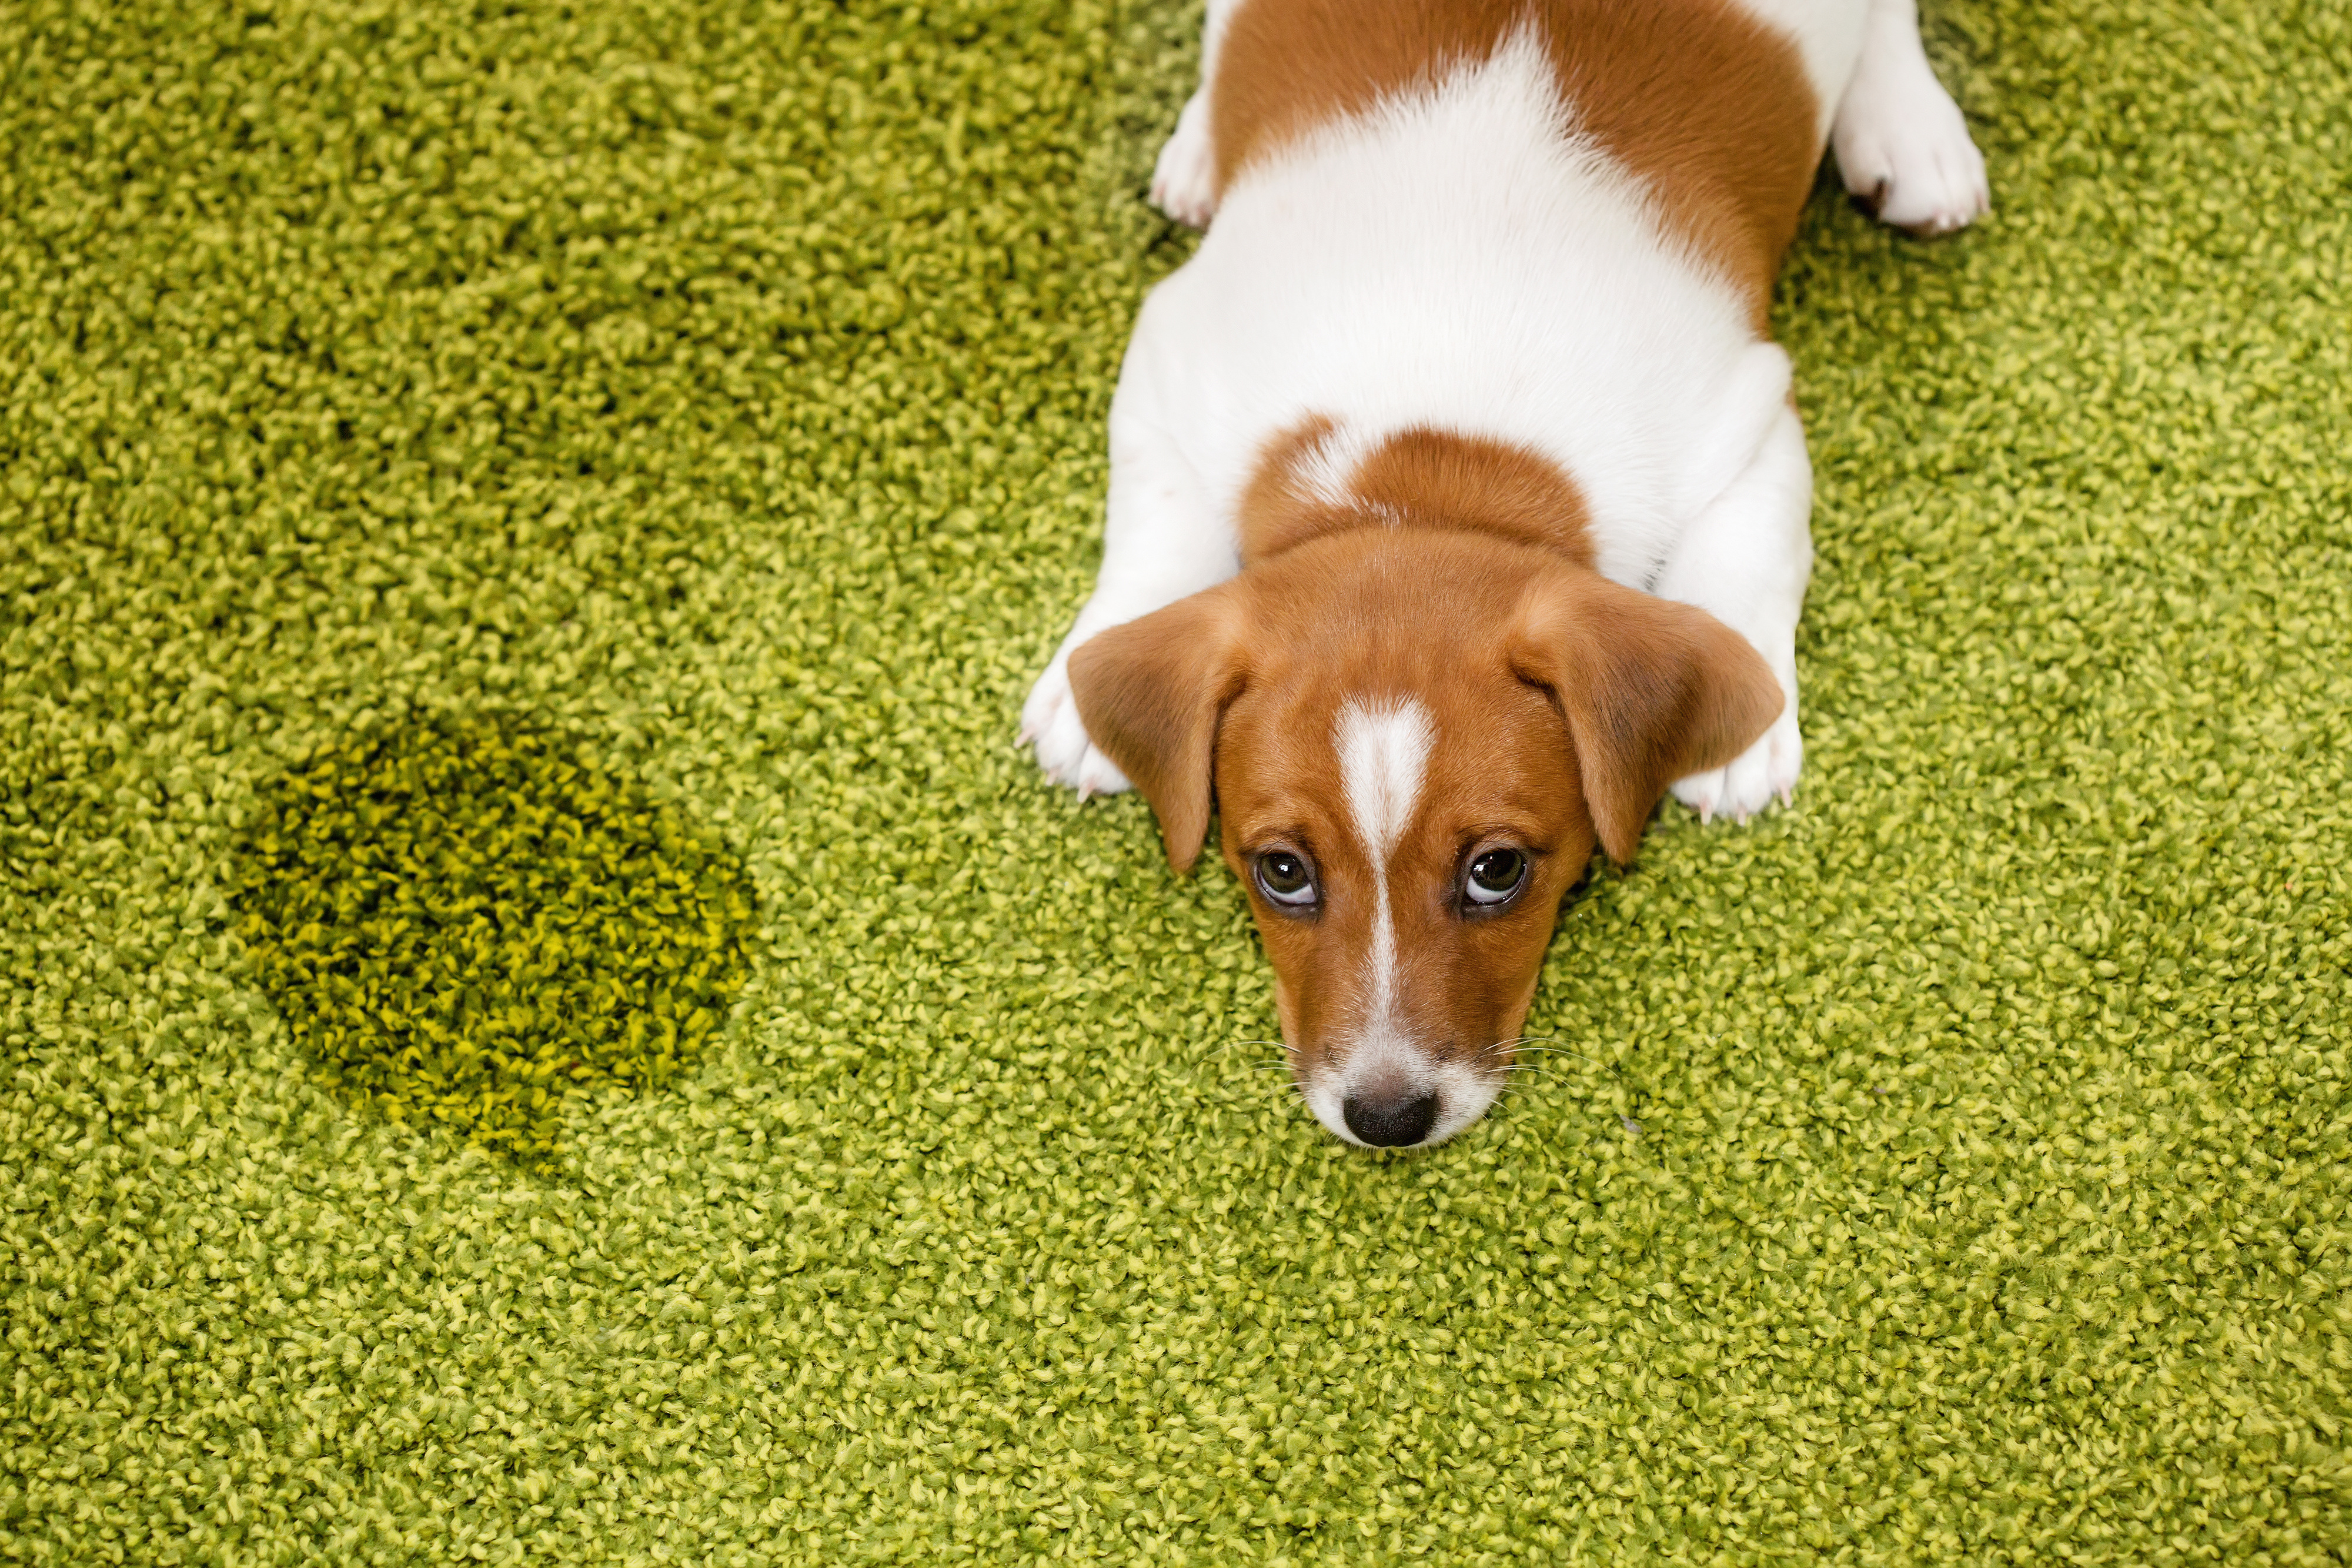 Puppy pees on the carpet